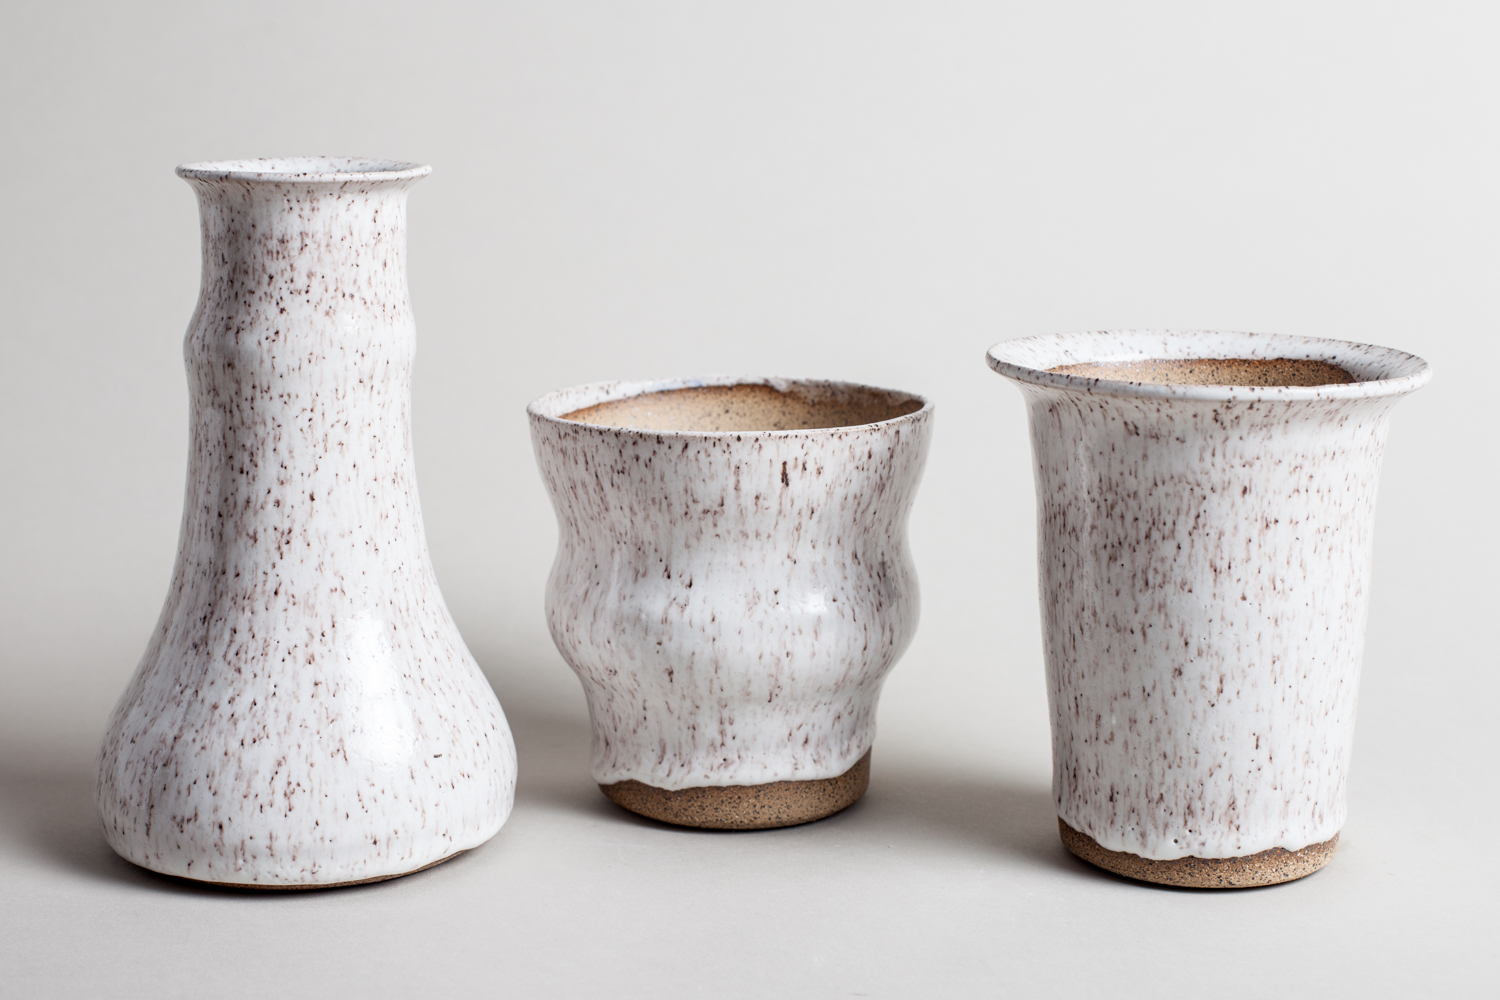 ankceramics-march-2016-alyssa-robb-121.jpg